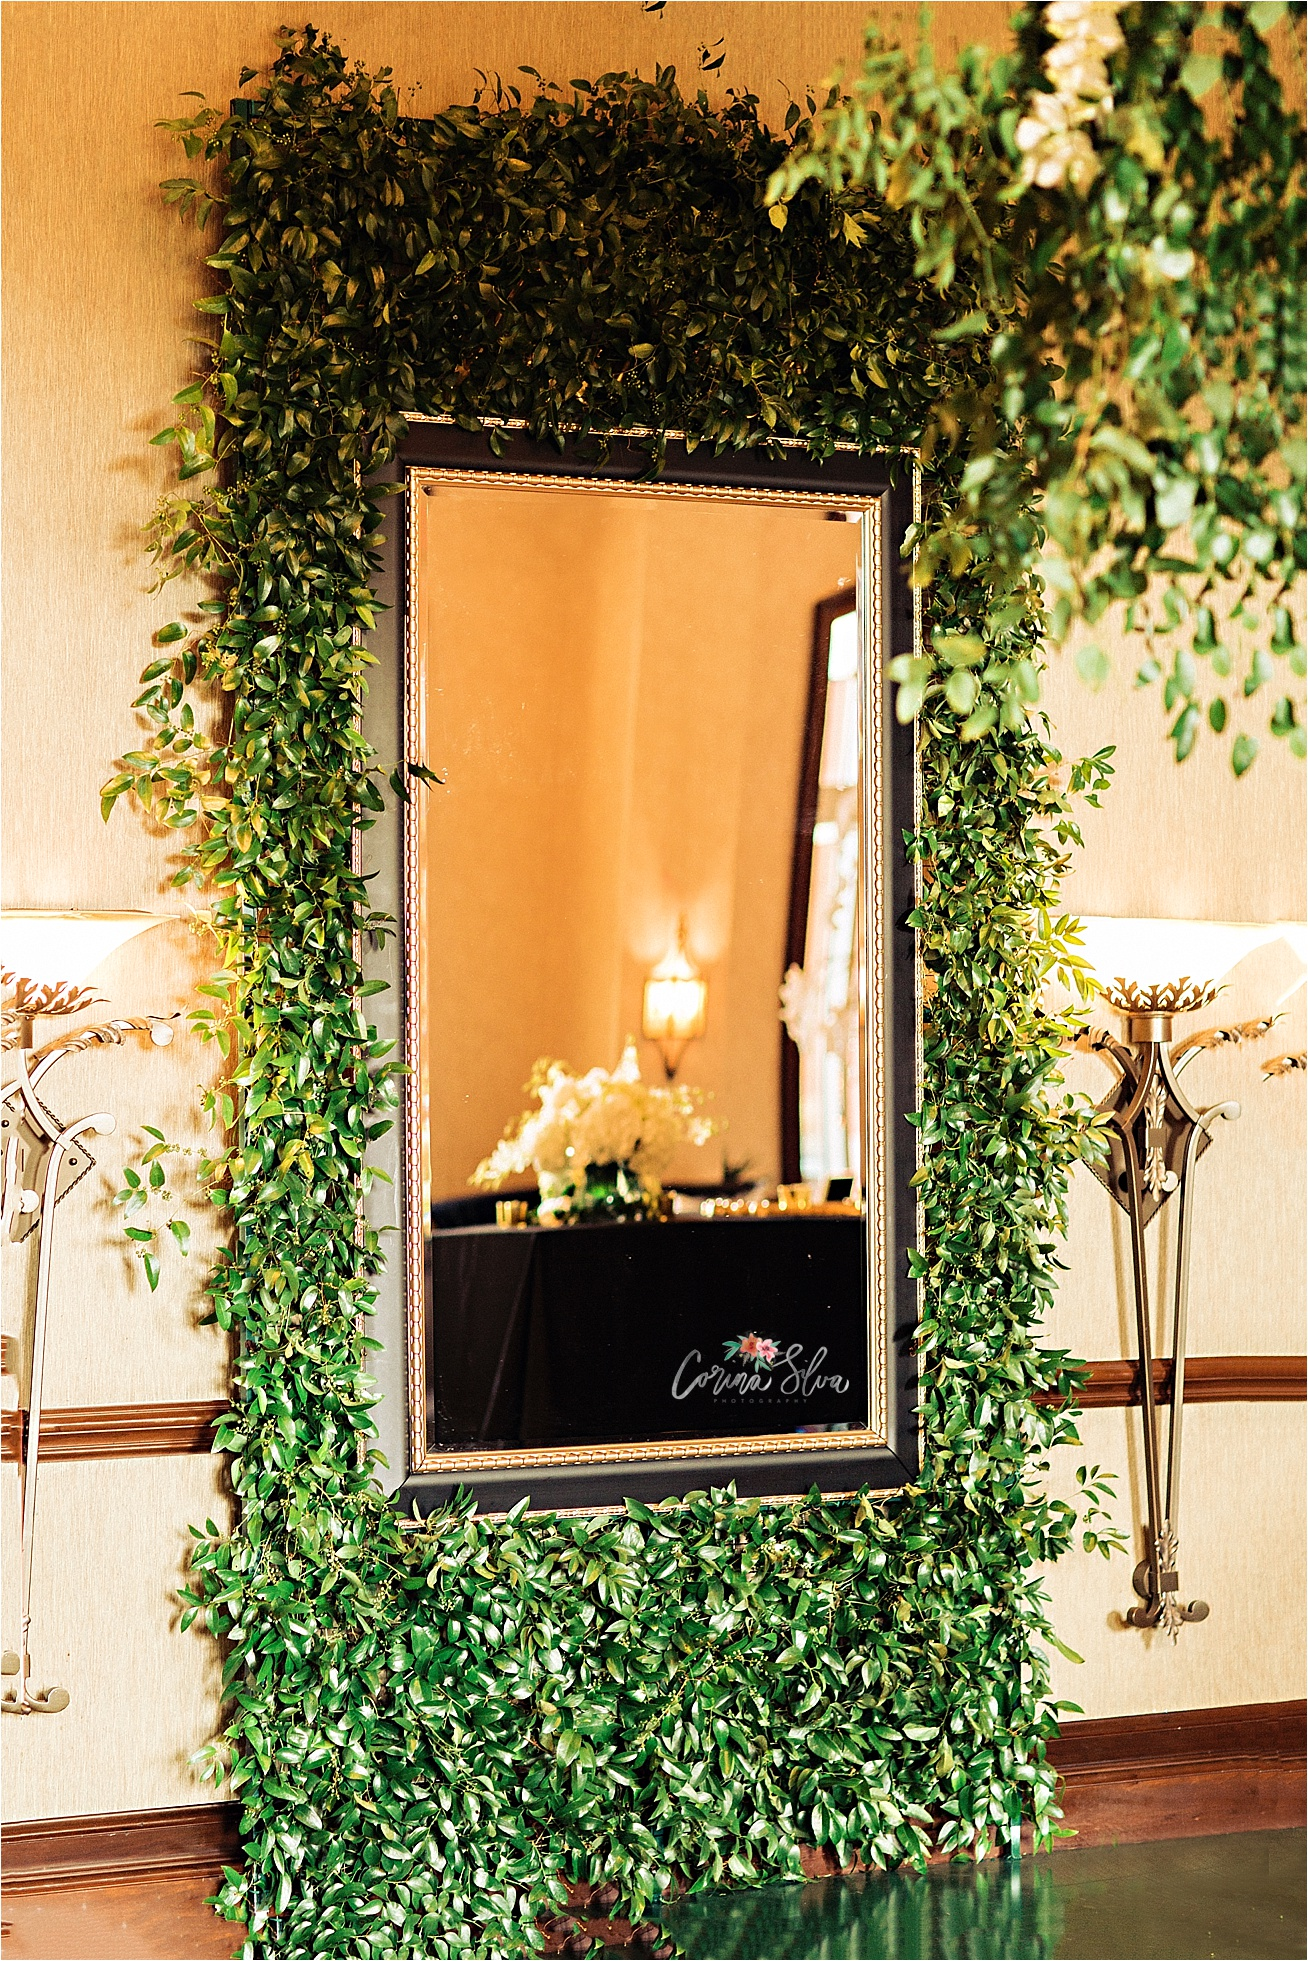 RSG-Event-and-Designs-luxury-wedding-decor-photos, Corina-Silva-Studios_0001.jpg